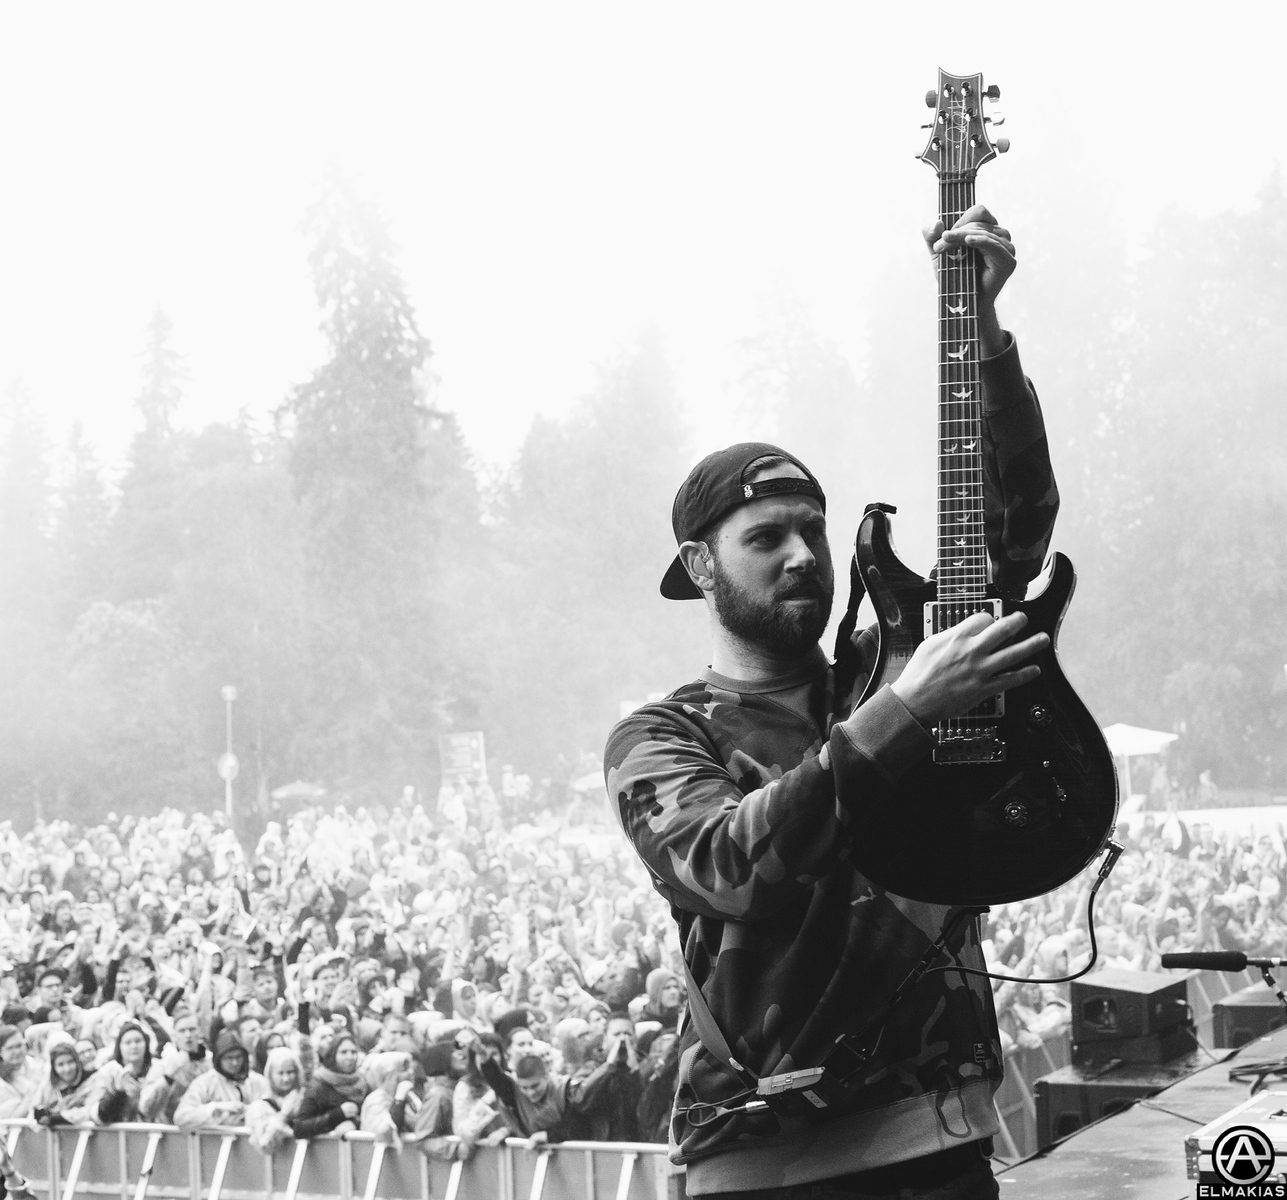 Kevin Skaff of A Day To Remember at Provinssirock in Helsinki, Finland